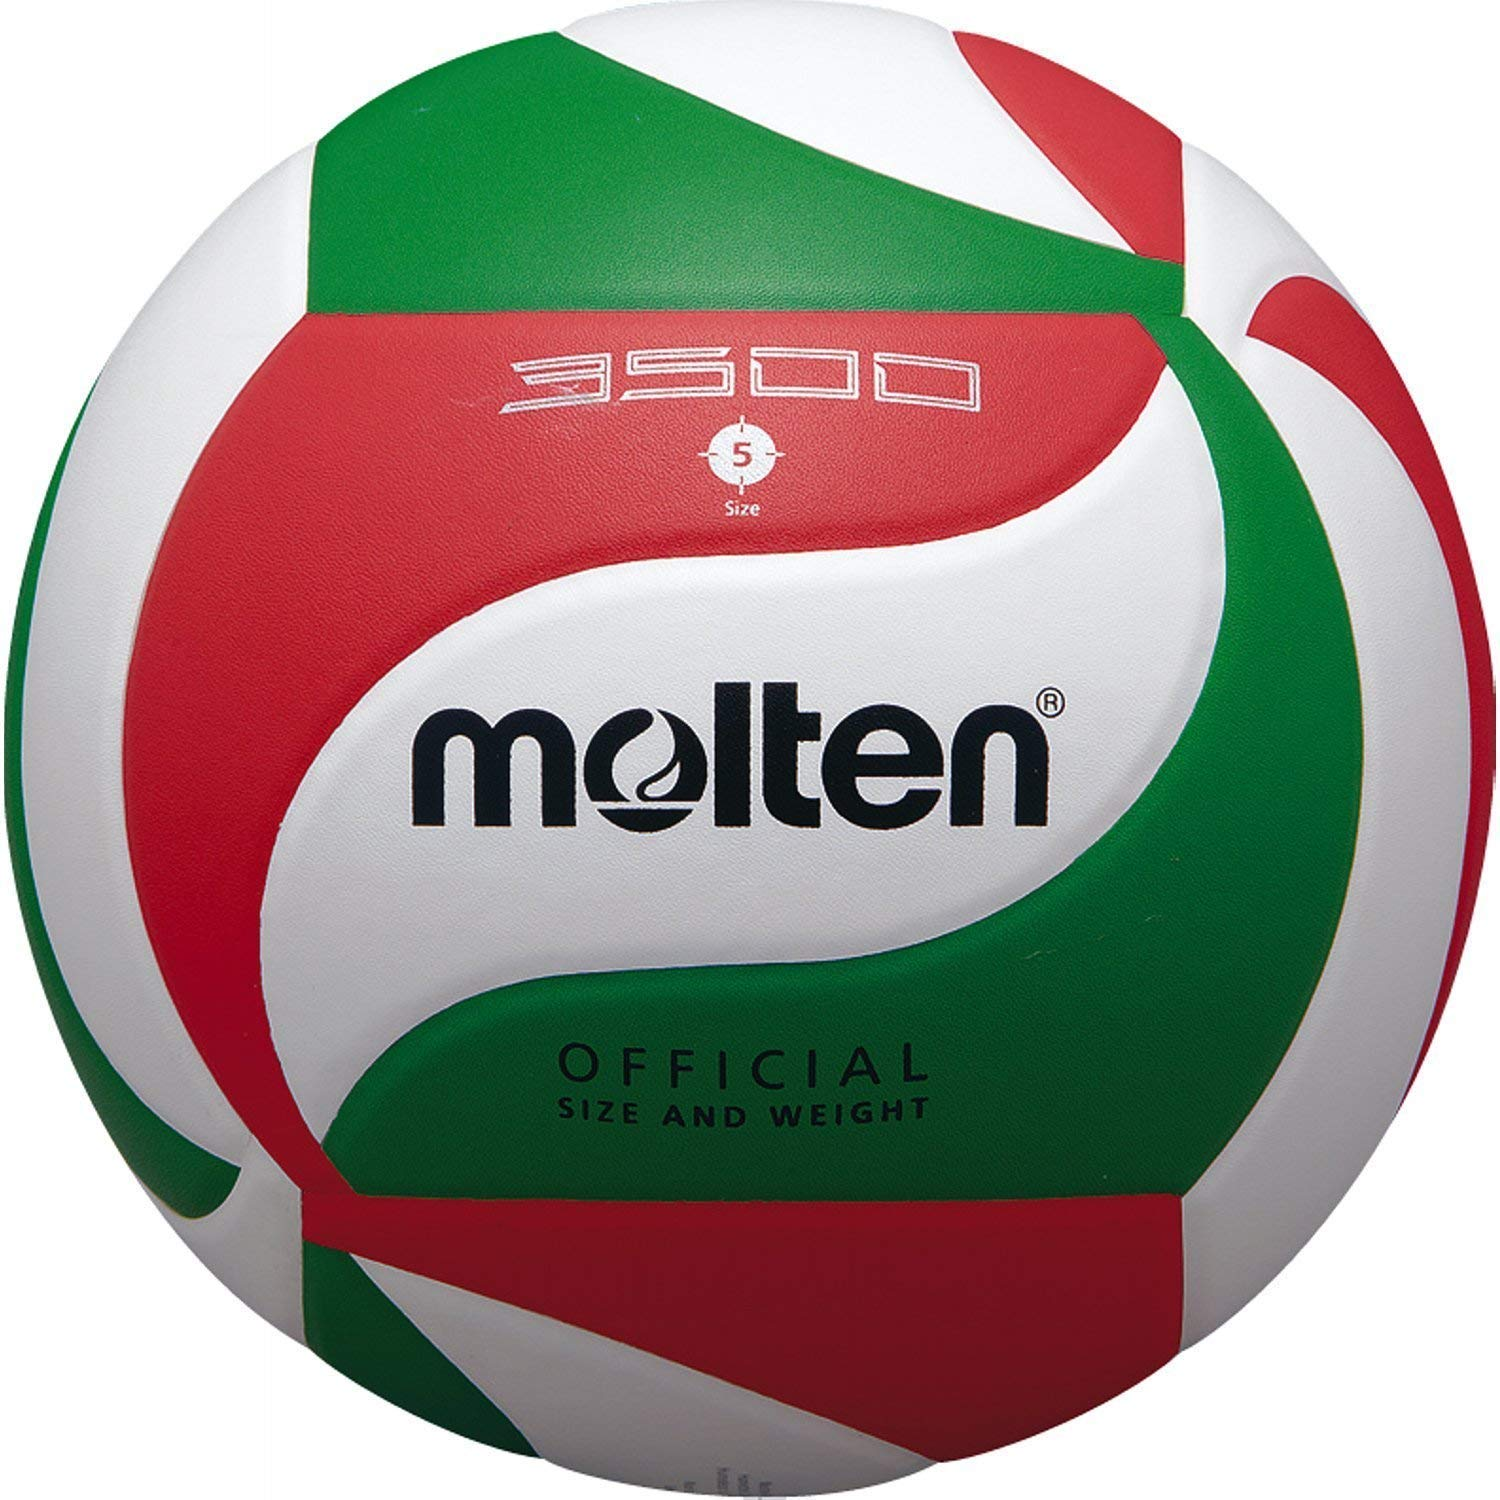 Molten V5m3500 Volleyball Size 5 Buy Online In Cayman Islands Molten Products In Cayman Islands See Prices Reviews And Free Delivery Over Ci 60 Desertcart